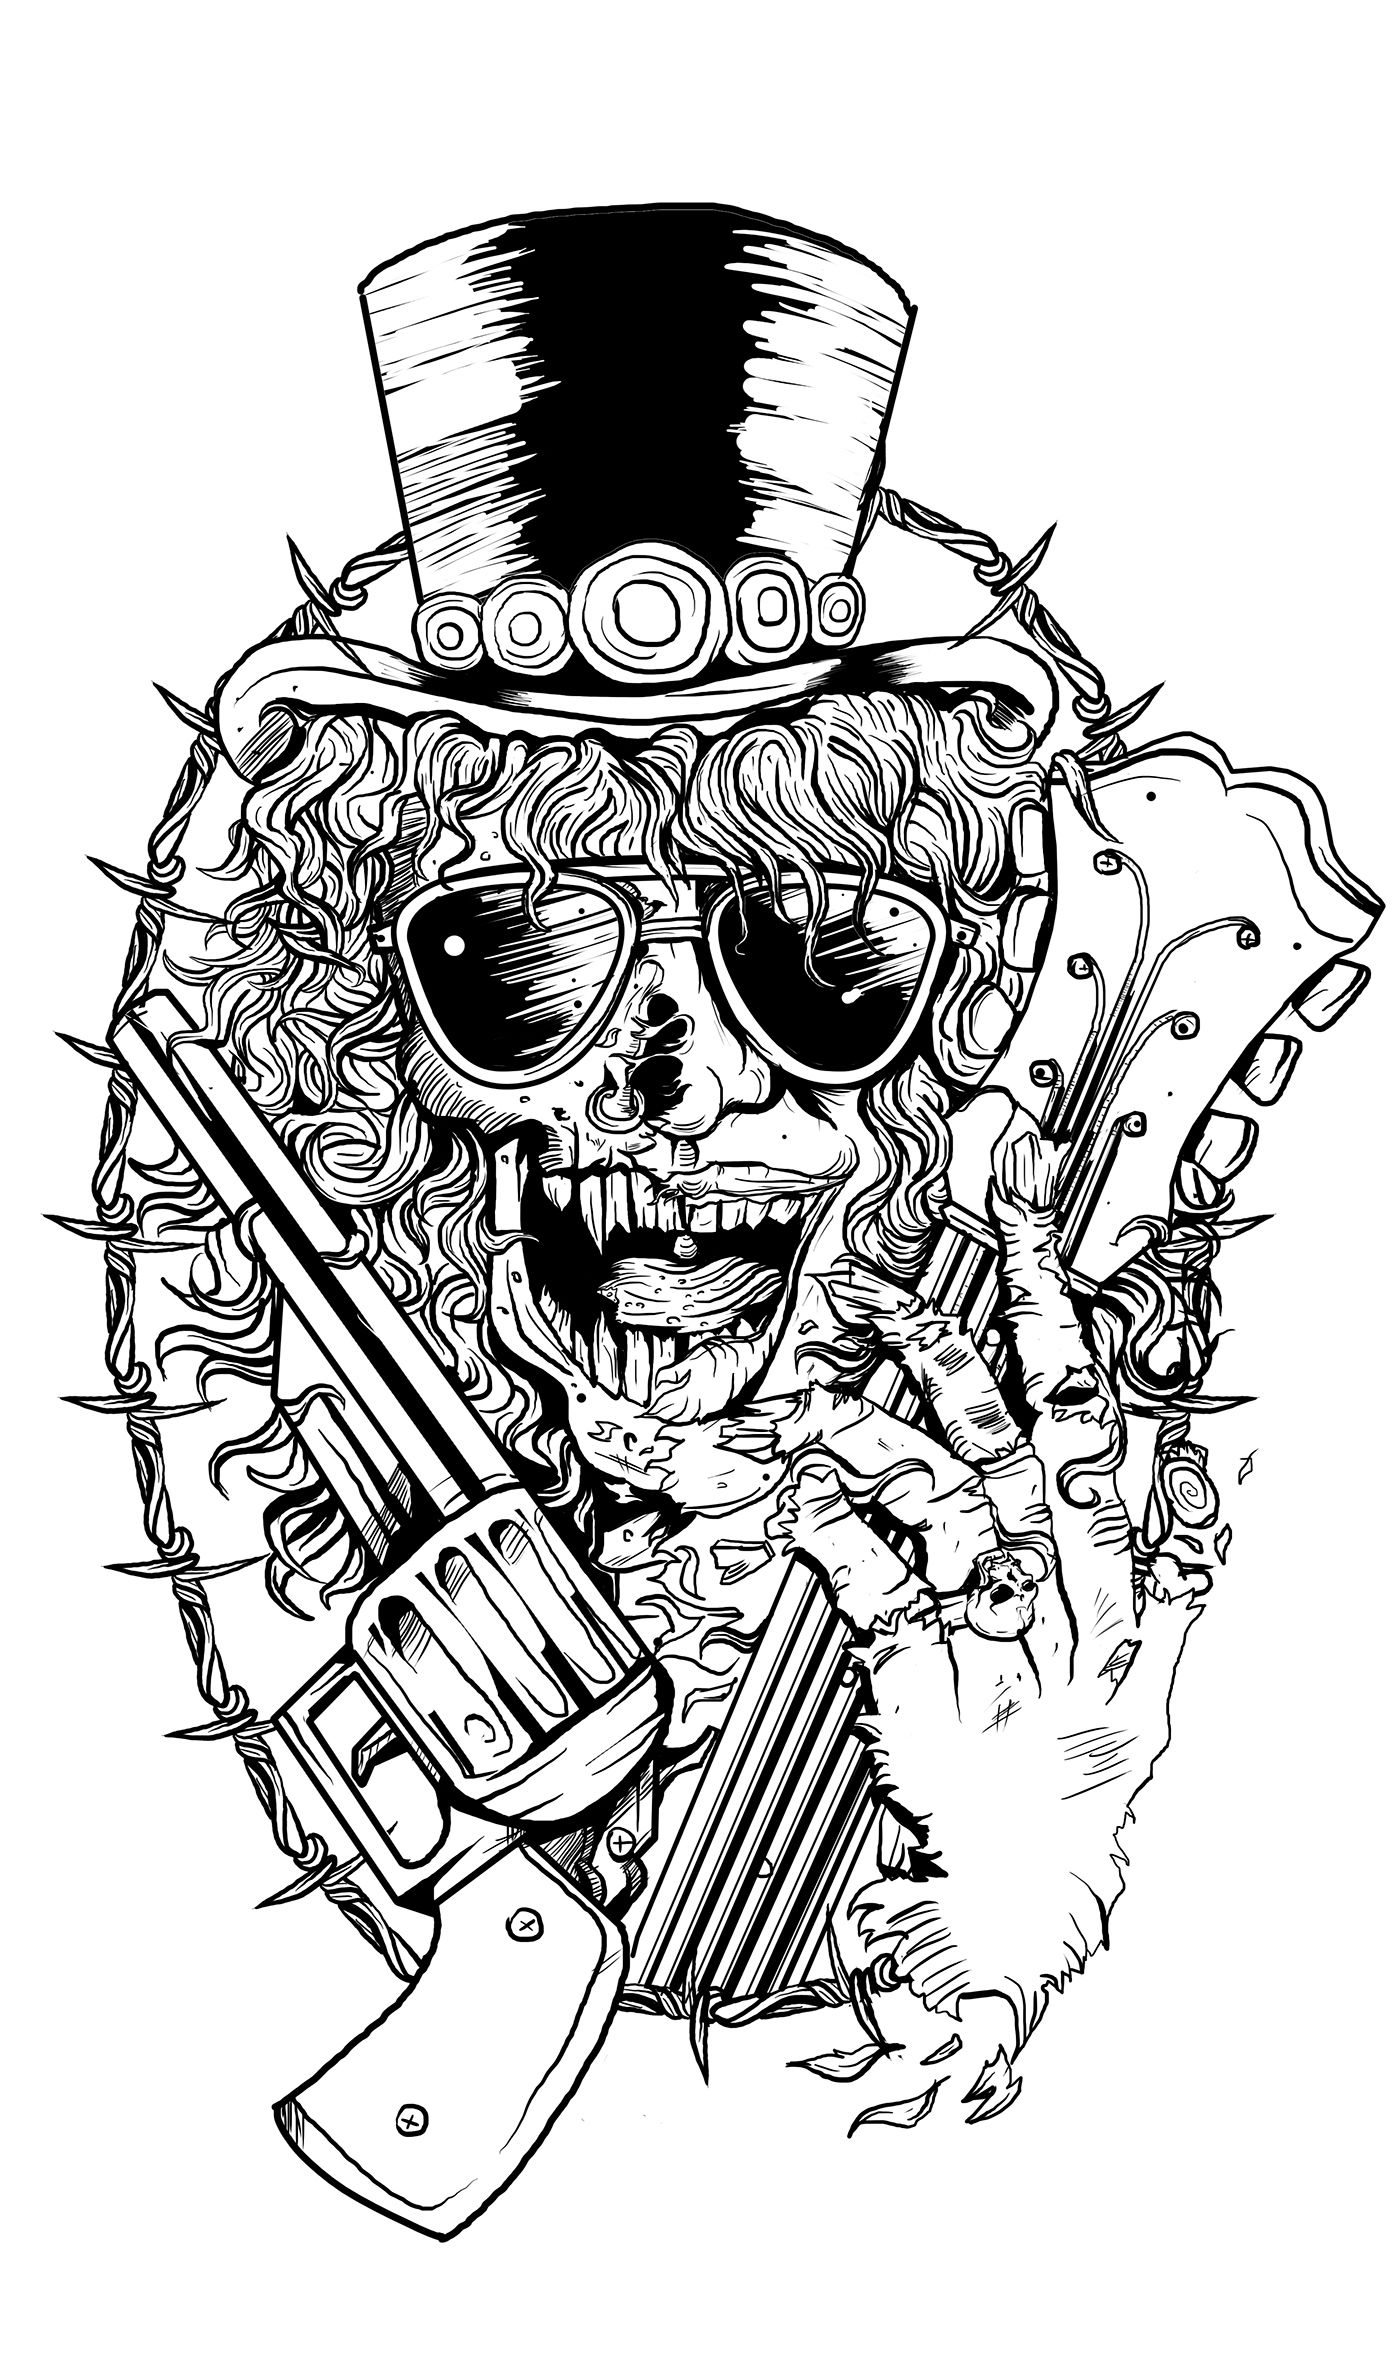 SLASH TShirt on Behance Ideias de tatuagens, Artes